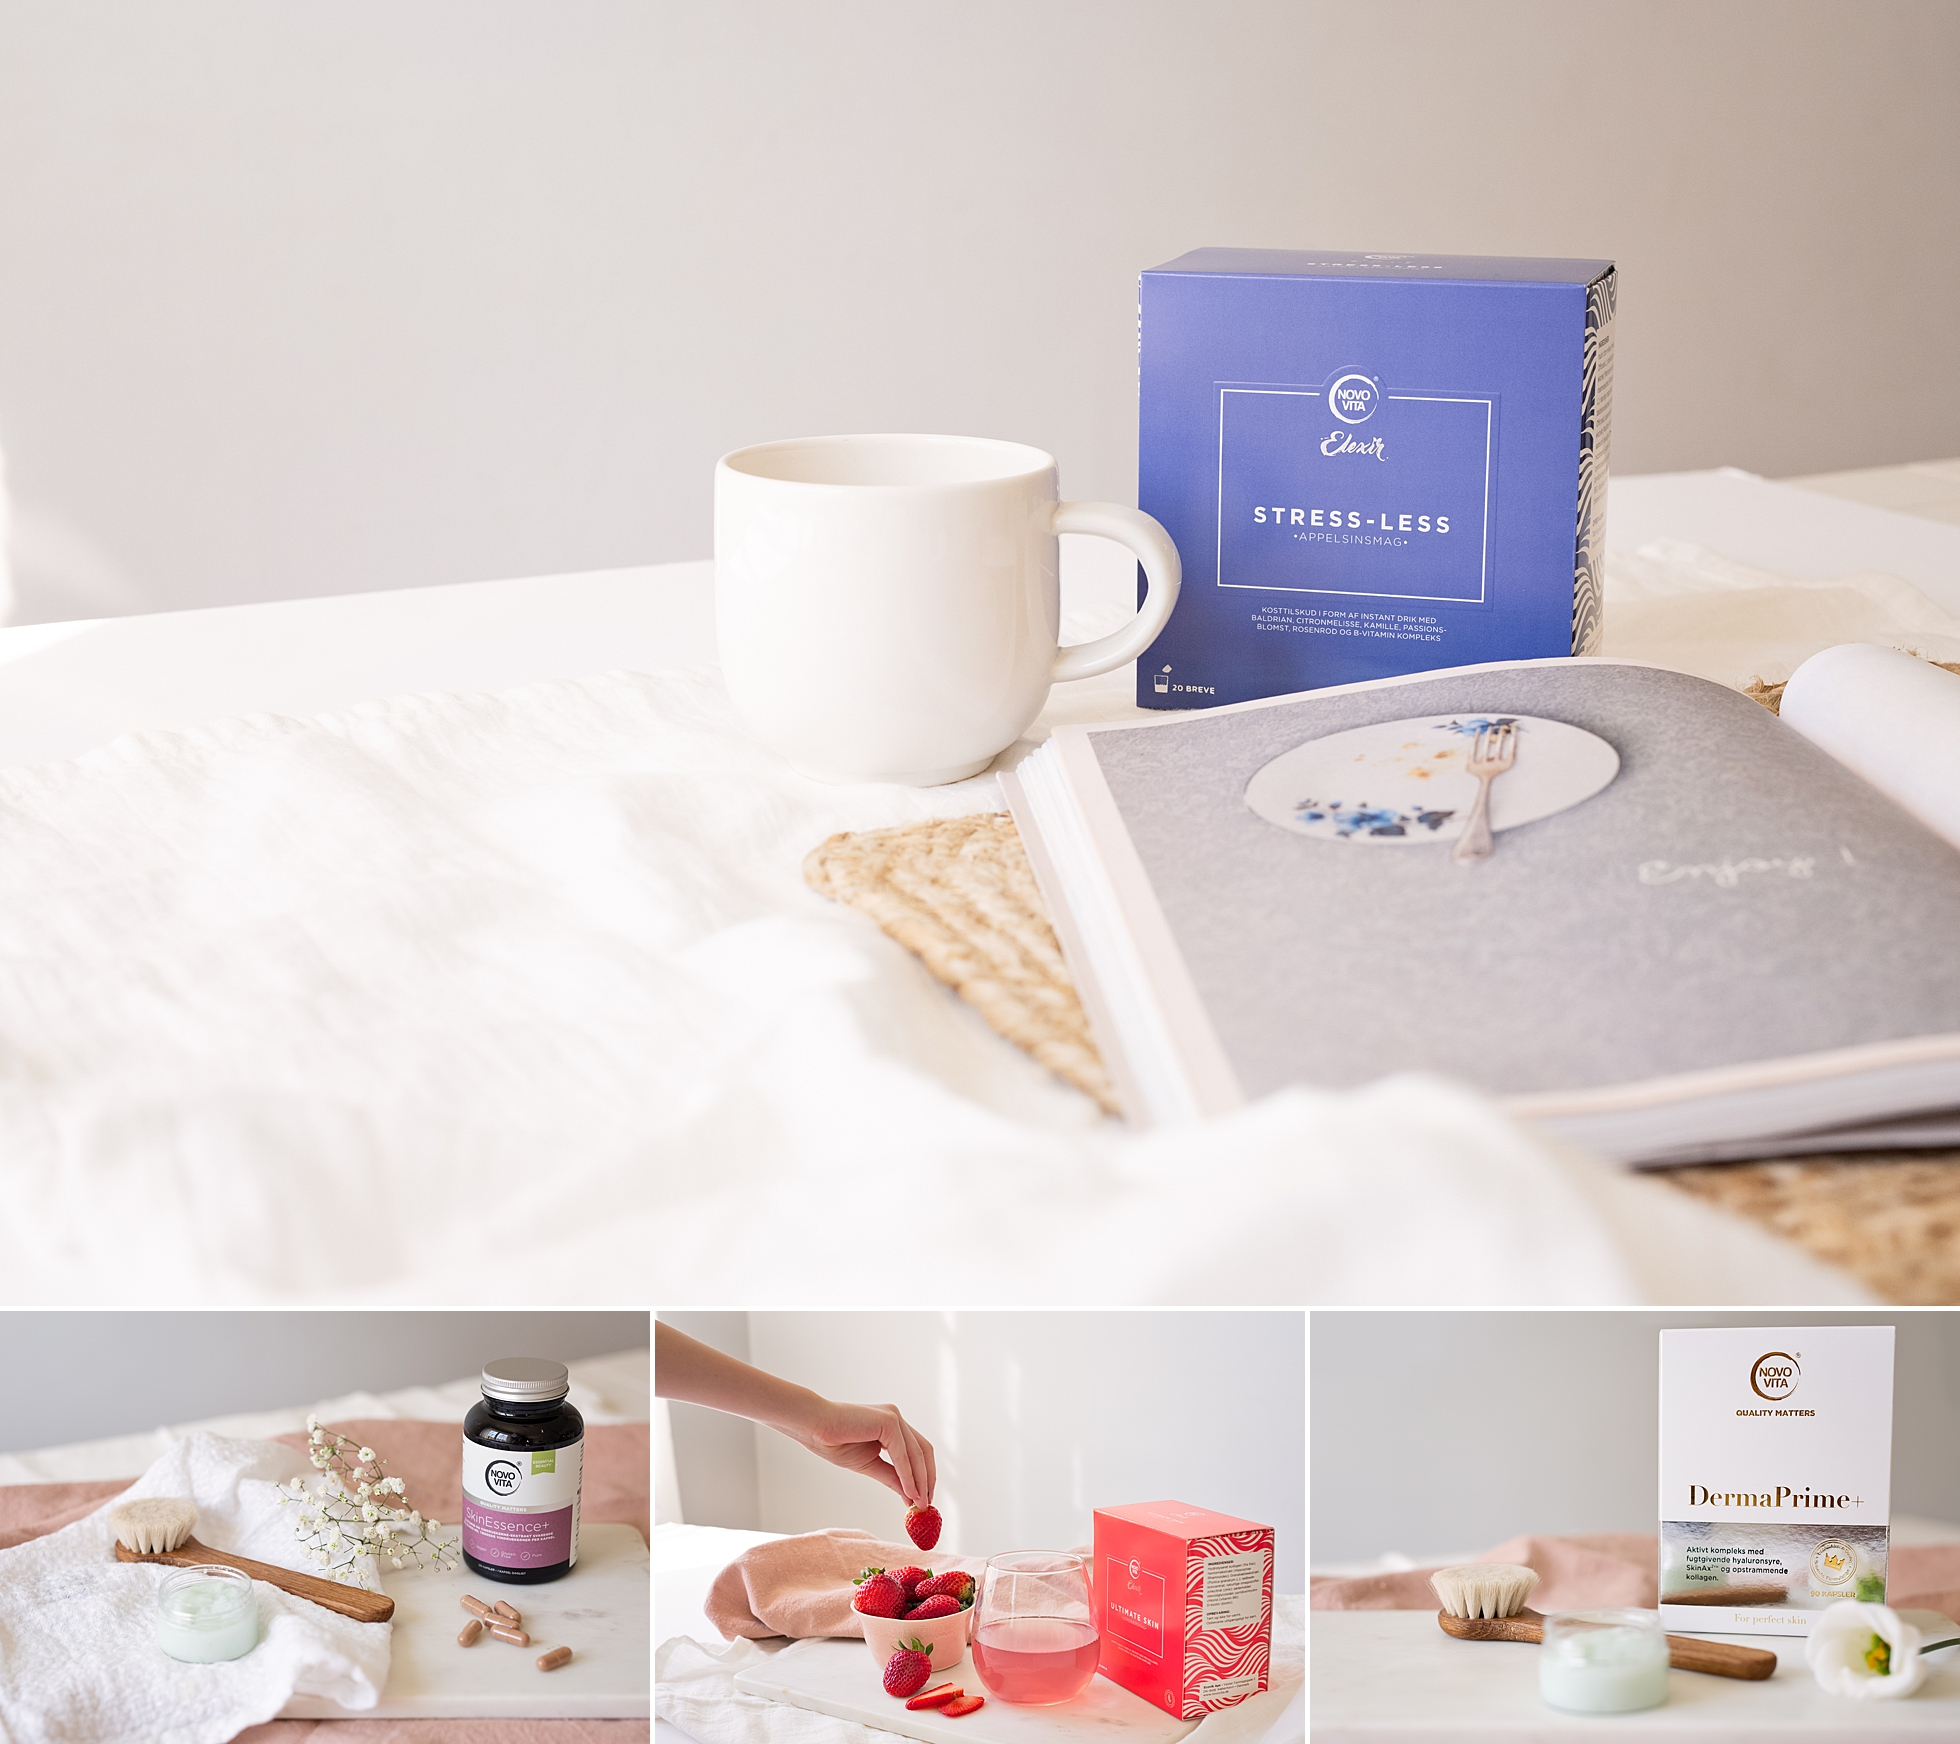 Pretty lifestyle images of healthcare products